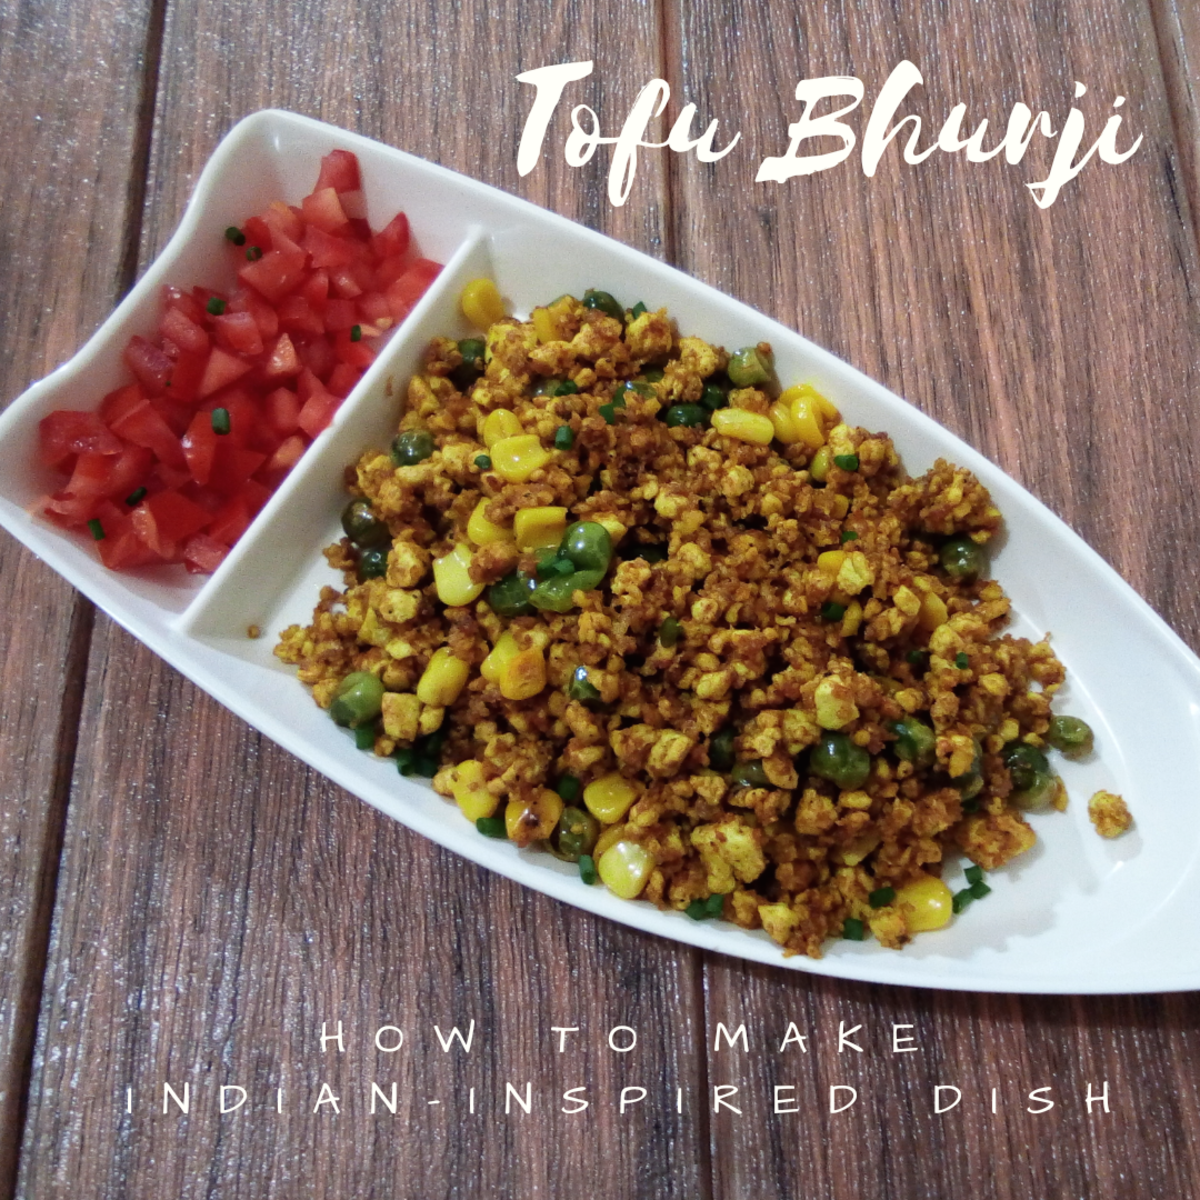 Discover how to make tofu bhurji, an Indian-insipred dish.